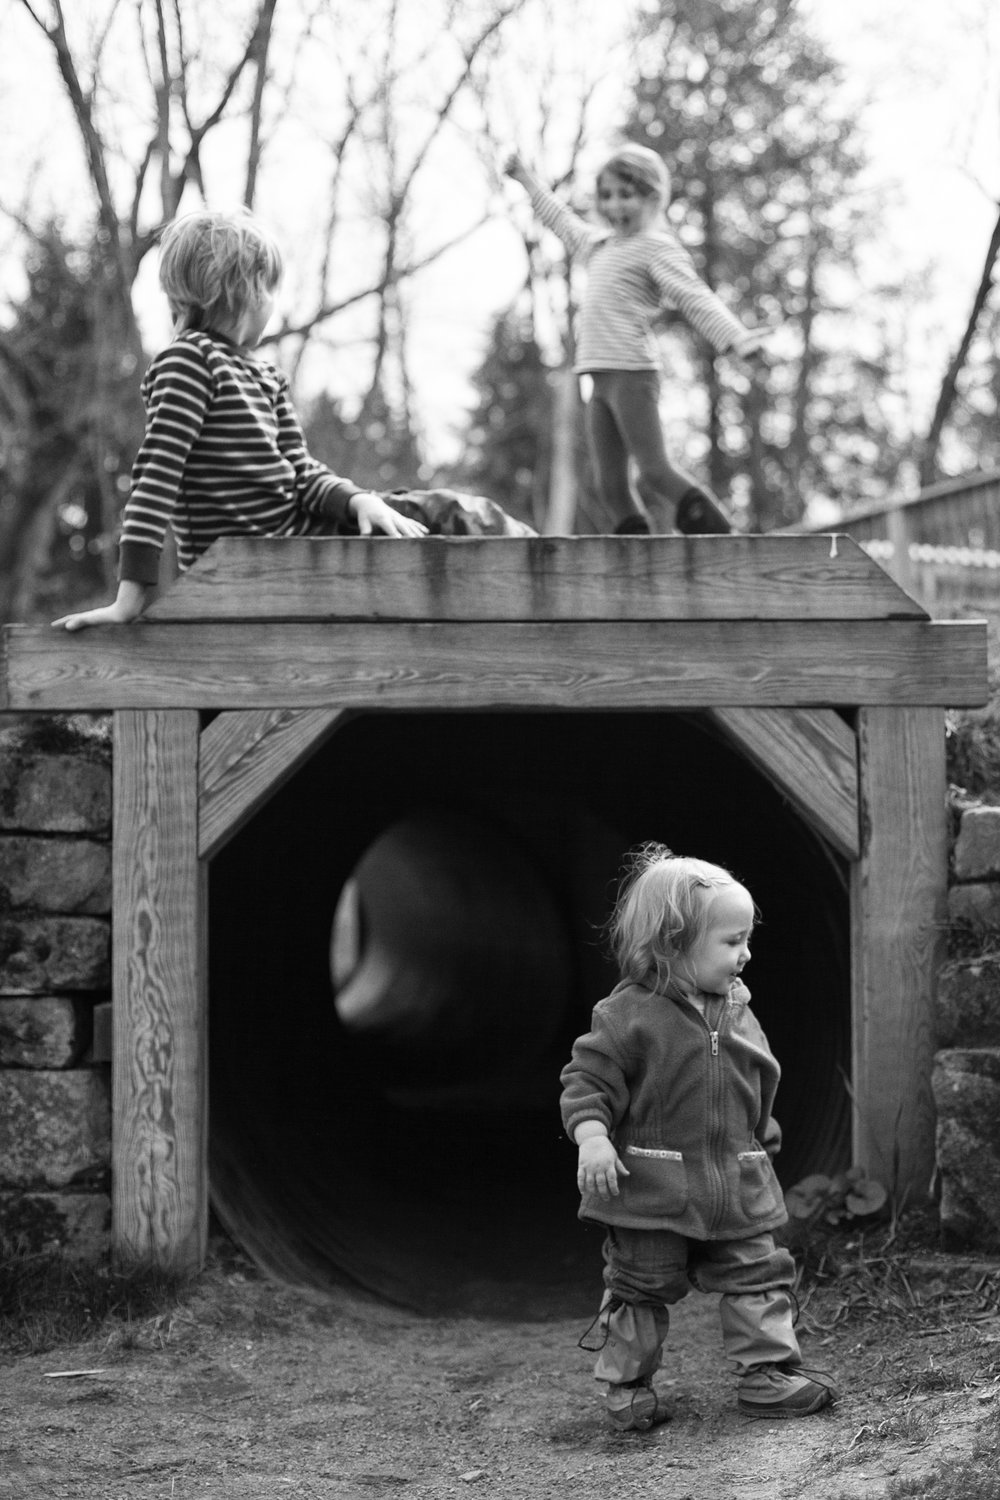 Inspired by the conversation - I am inspired by the photographers I talk to on the show - and hope you are too. I took this photo of my kids a couple days after talking with Niki. I was thinking of how she gets her kids in a frame together and her great black and whites.